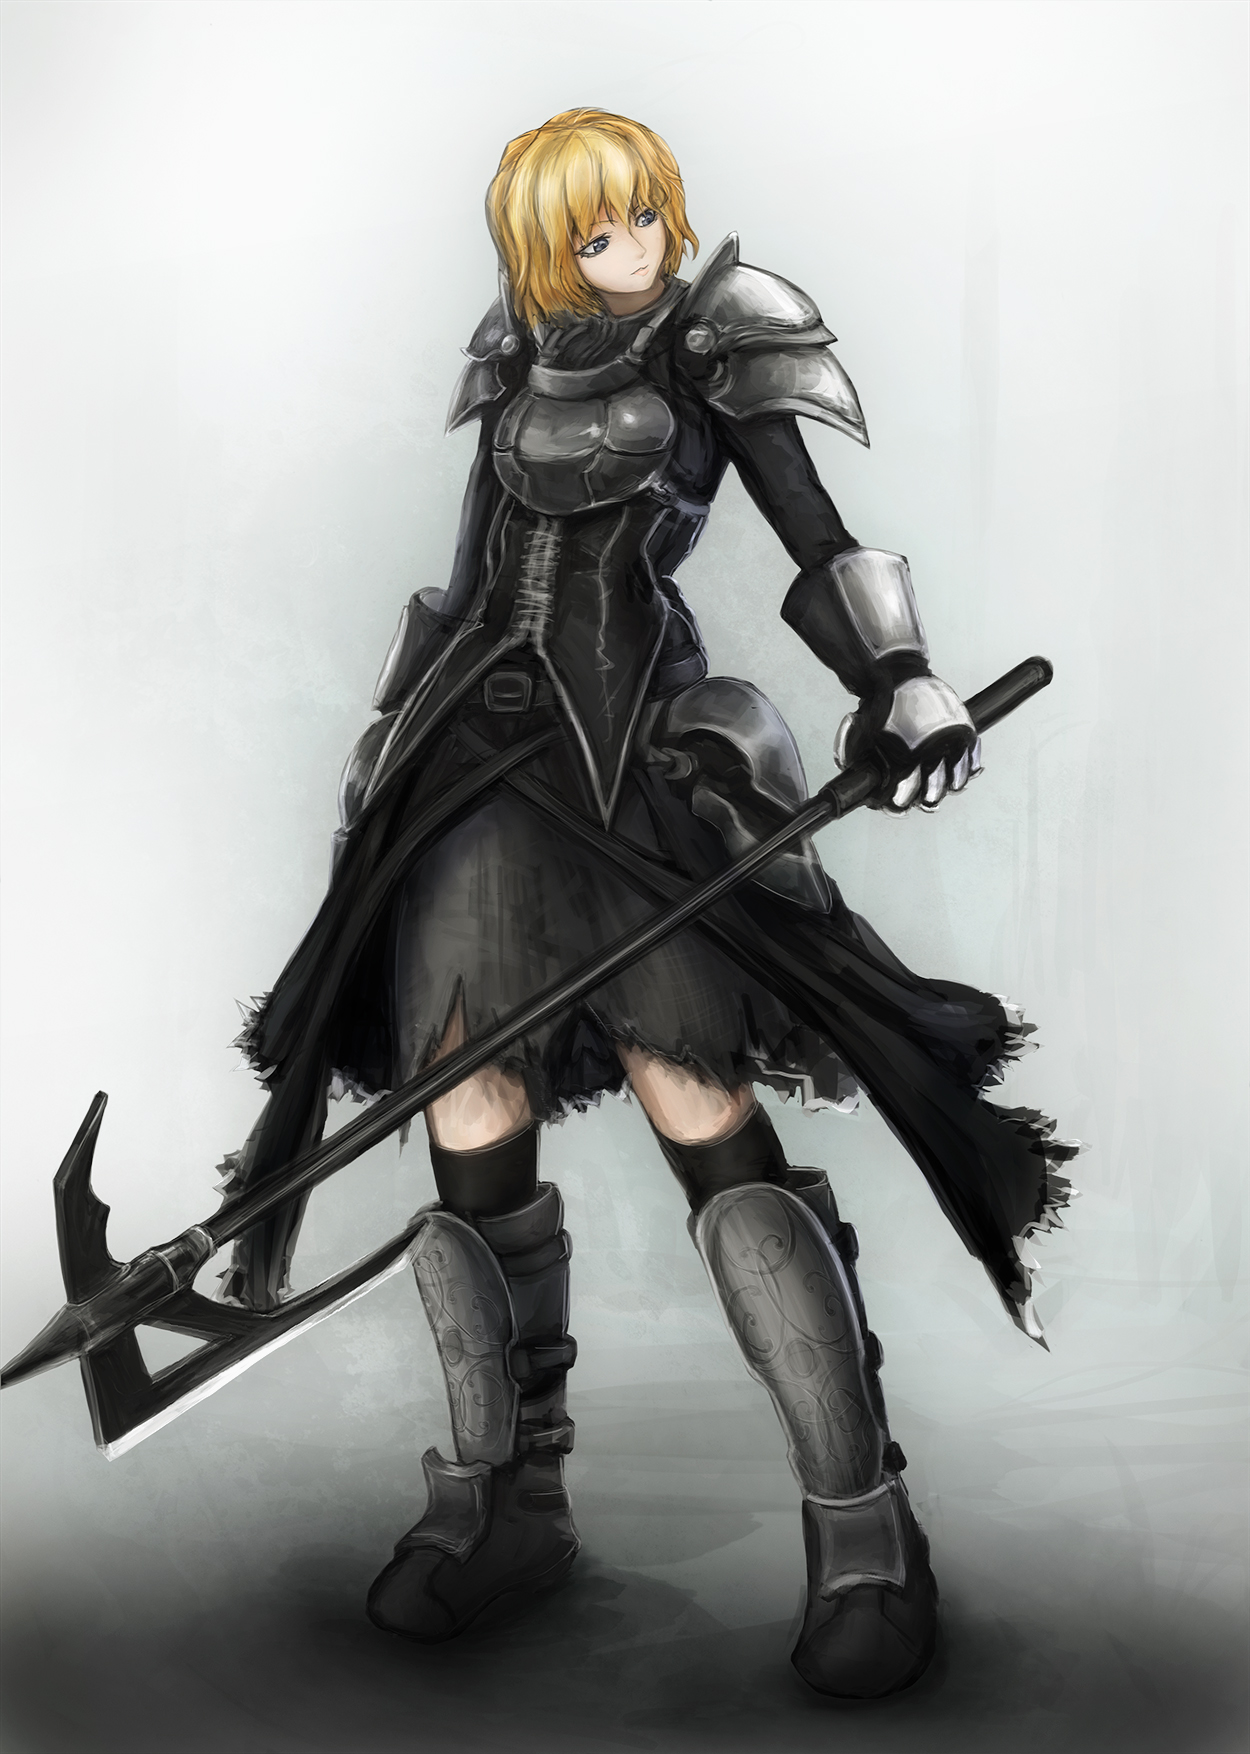 Anime Characters Knights : Female knight by altglanz on deviantart